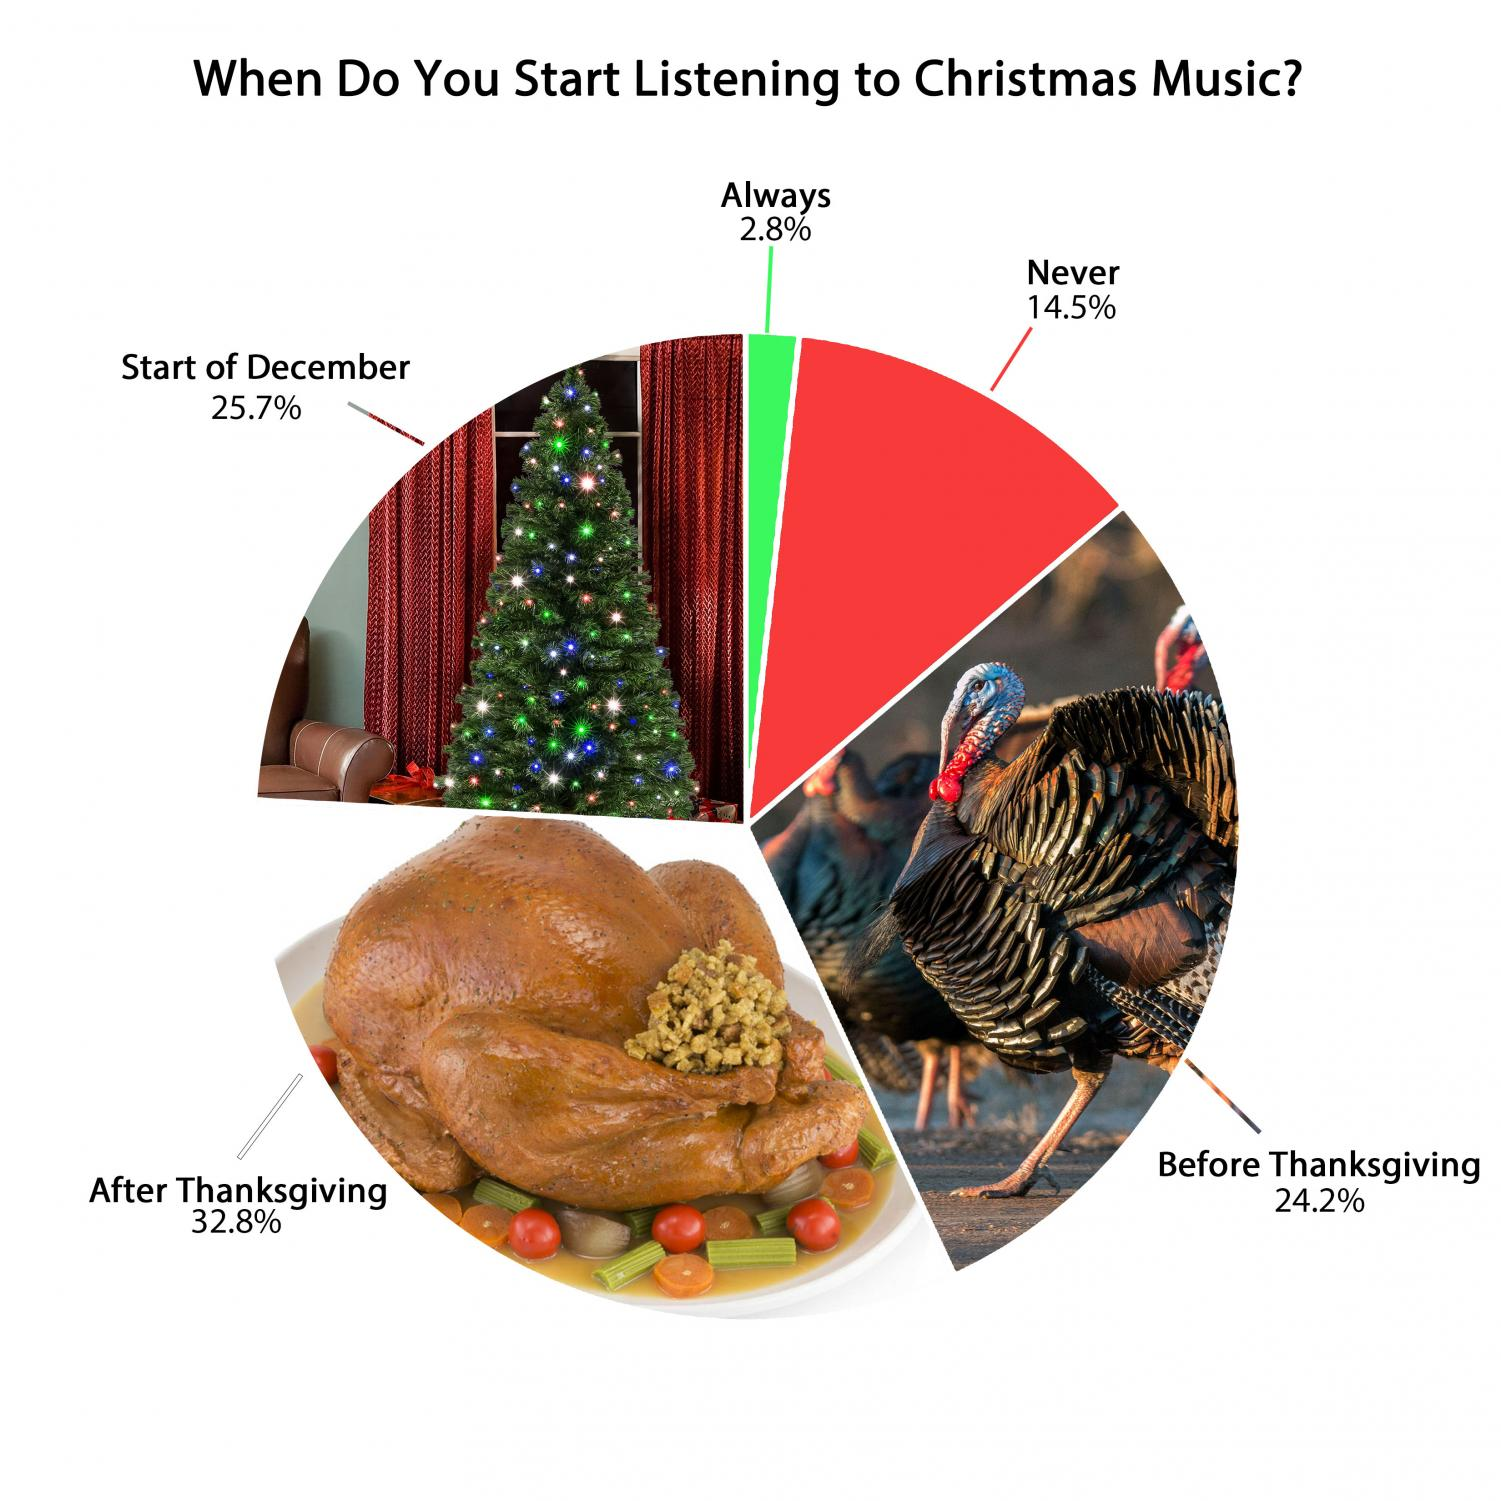 A poll of CT students revealed that it was almost even between those who began listening before Thanksgiving, and those who listened after - the great debate. click to view